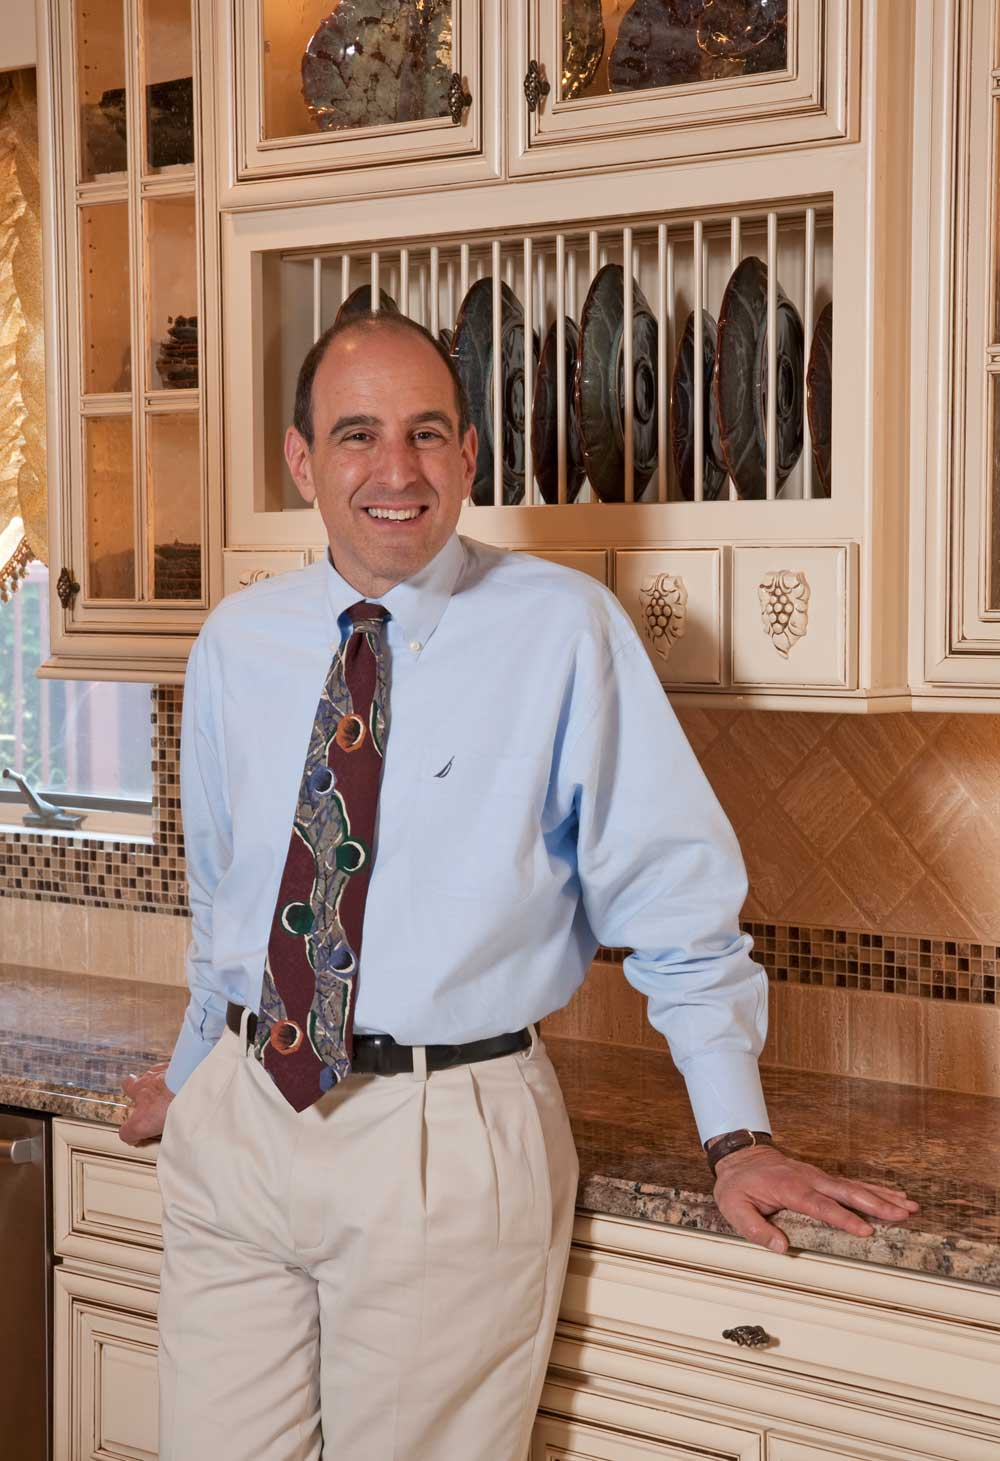 Bruce Roth of Sycamore Kitchens & More